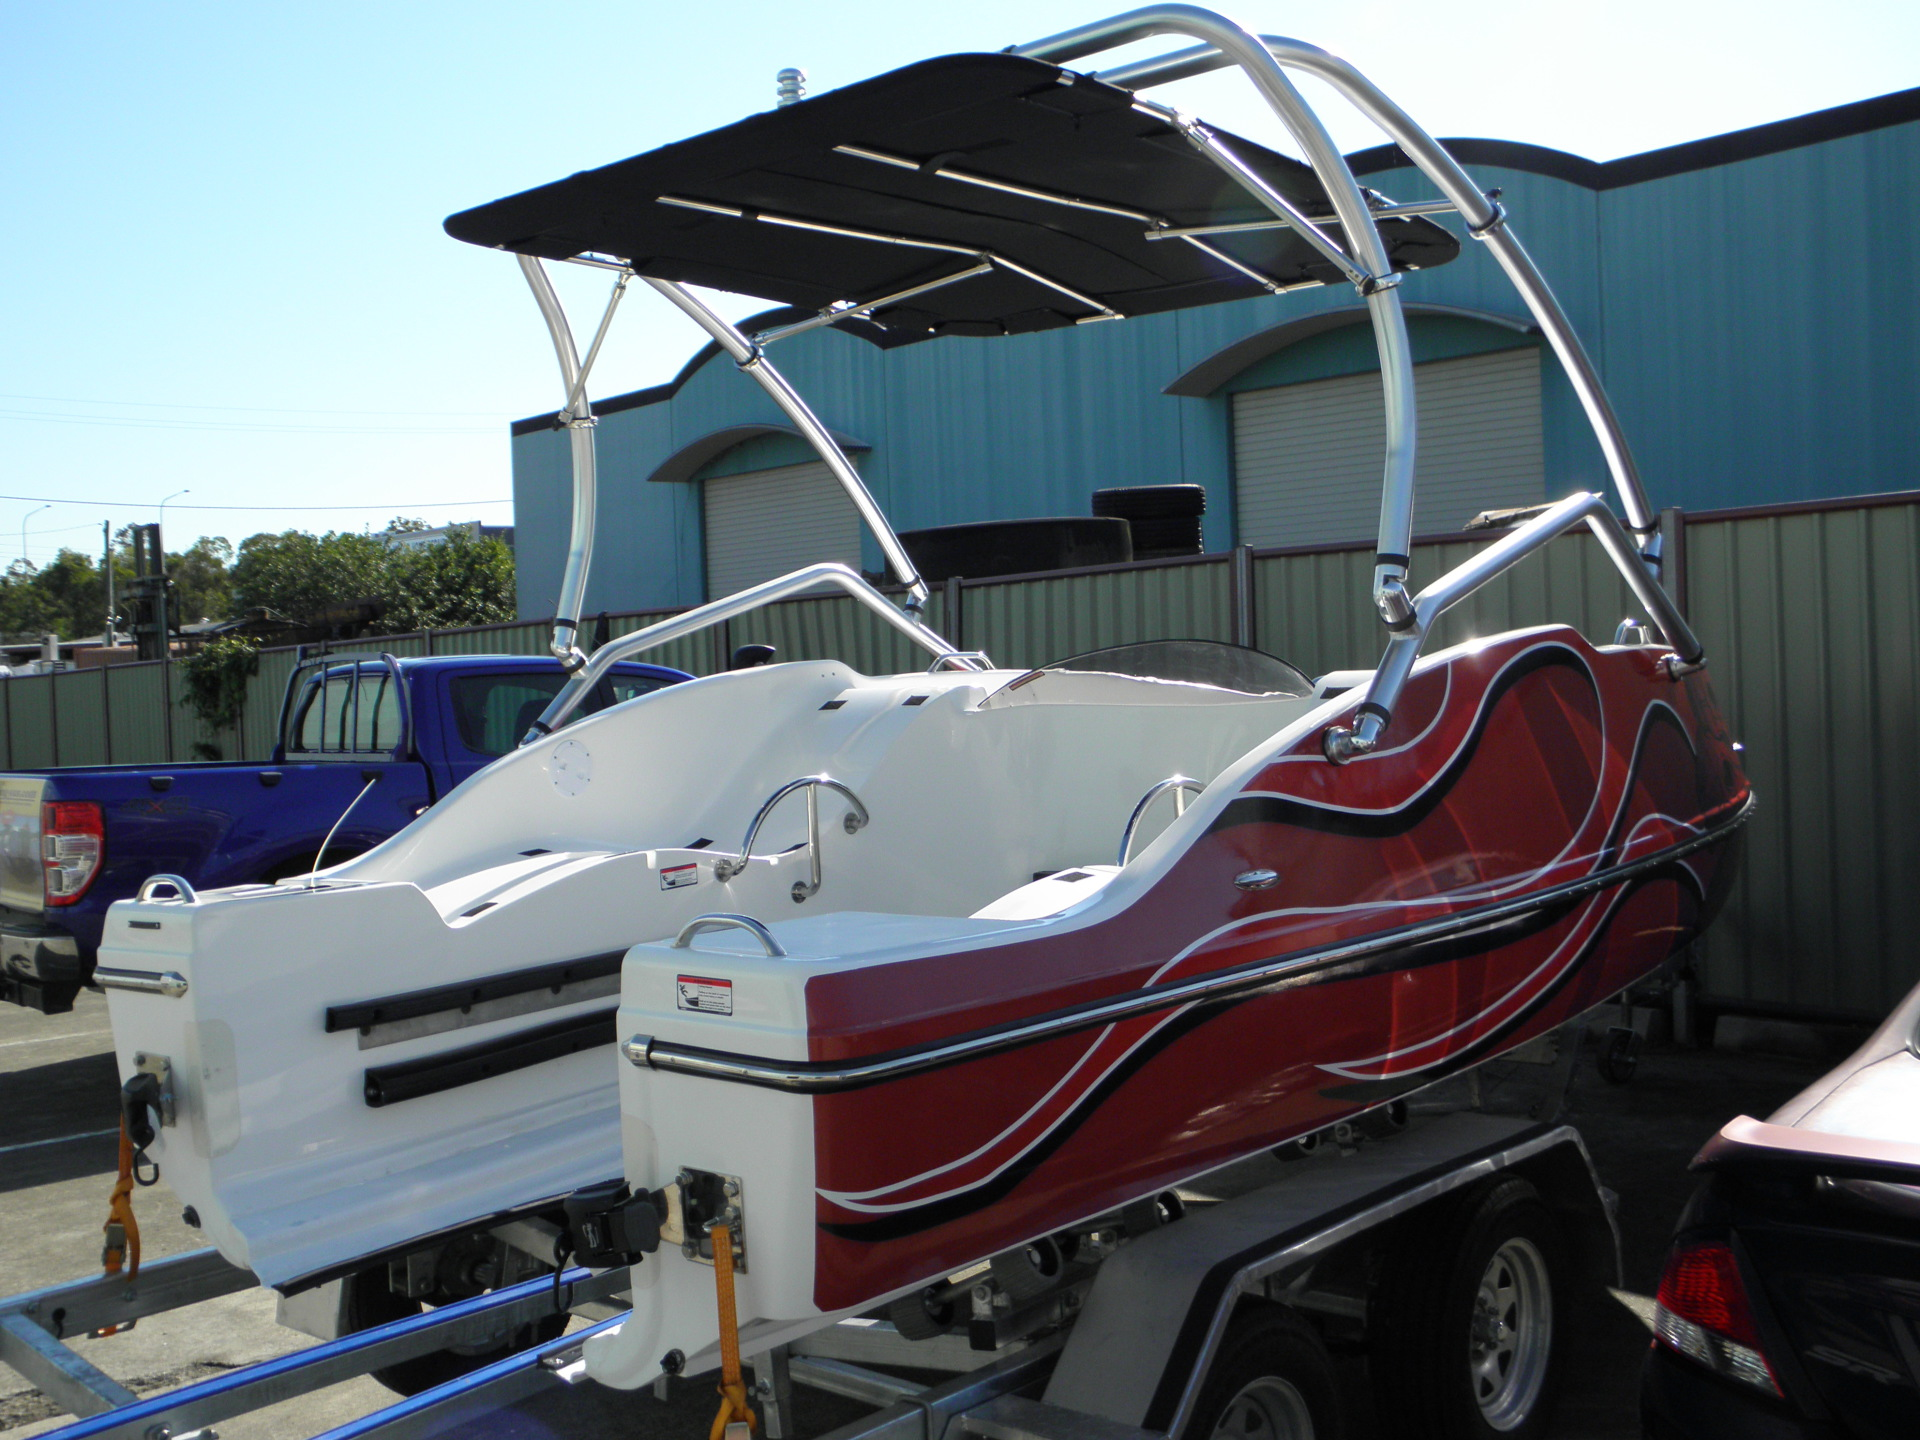 Jet Ski Boat wake board tower and Bimini